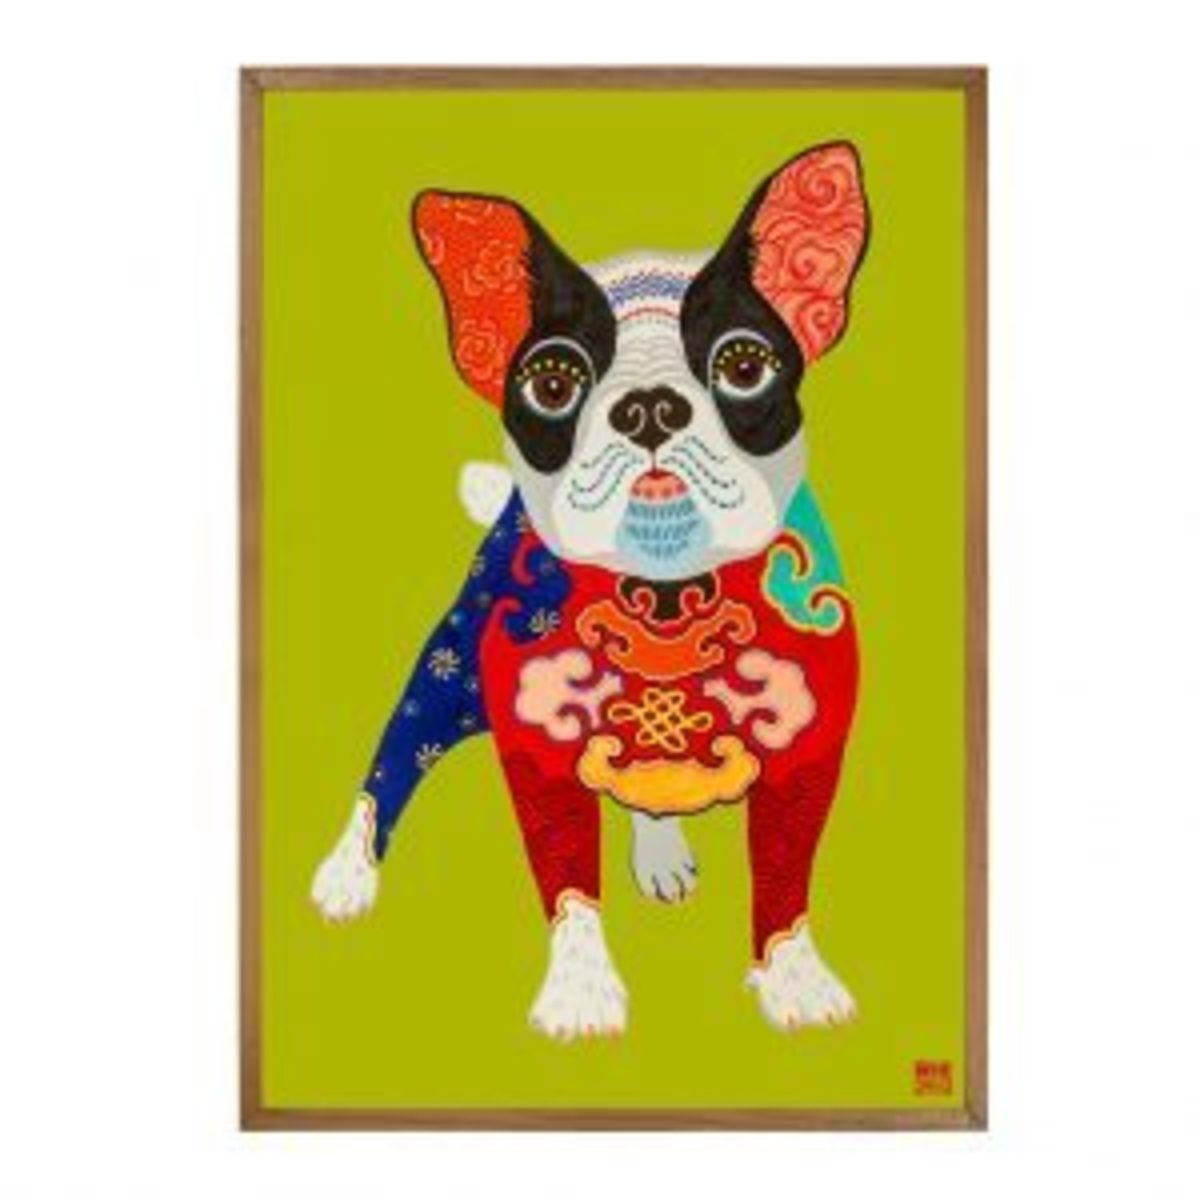 Dog - Limited Edition Print of 25 (Unframed)